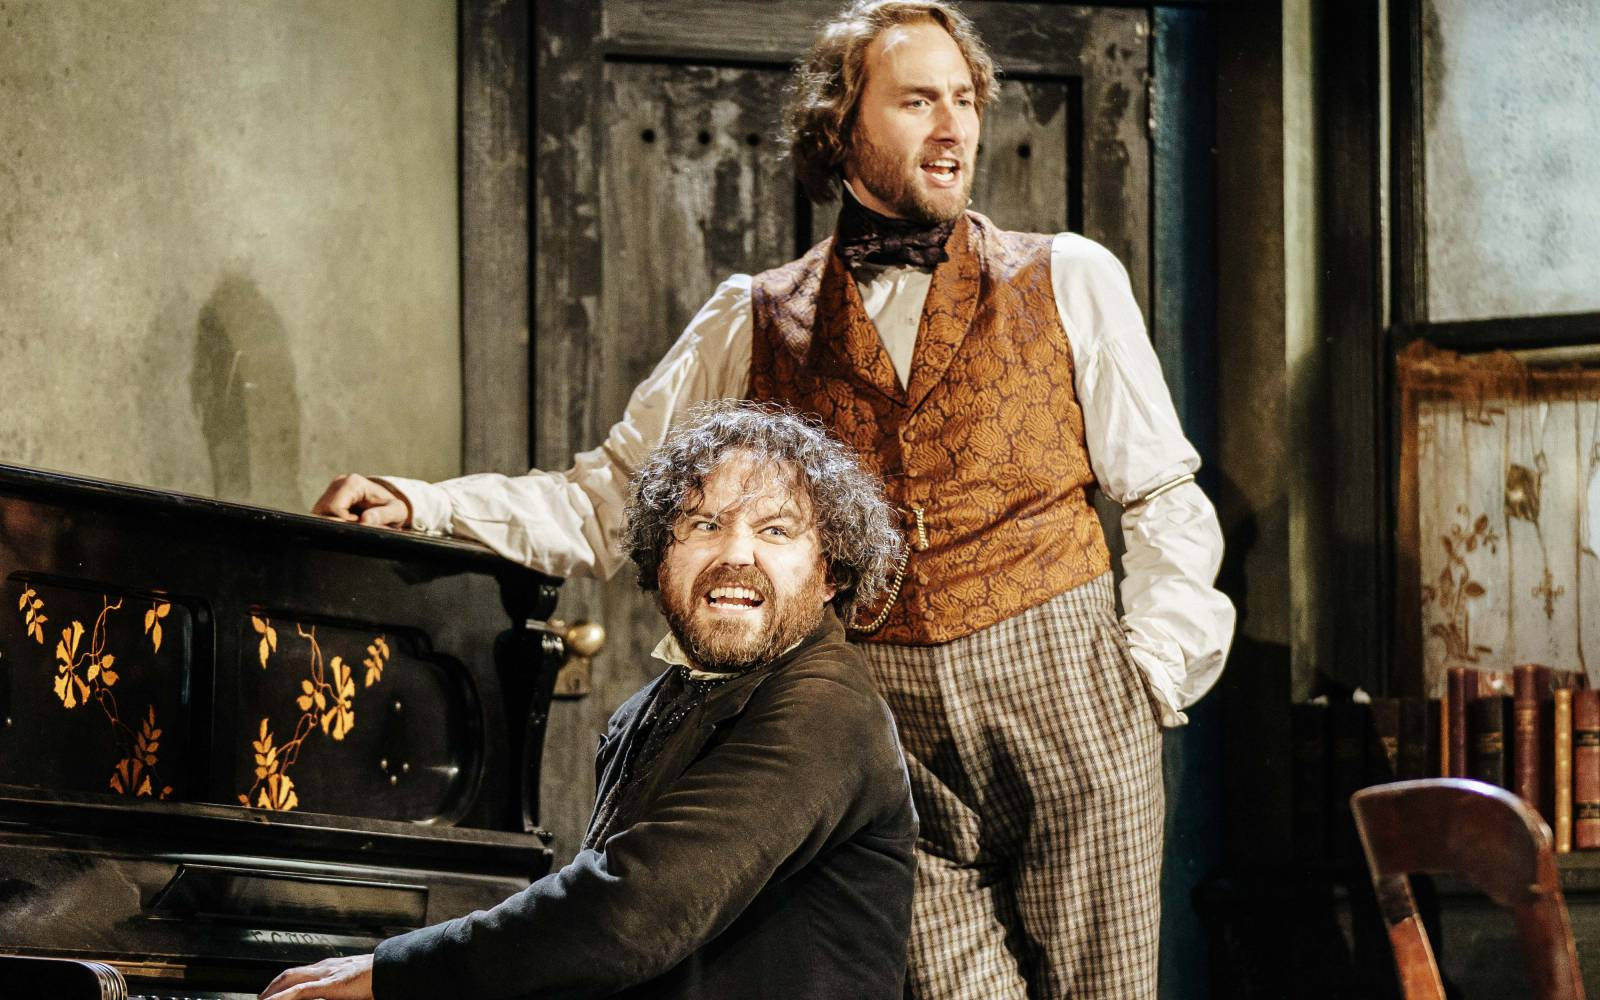 One man plays the piano, while another stands leaning against the piano, both in 19th-century dress